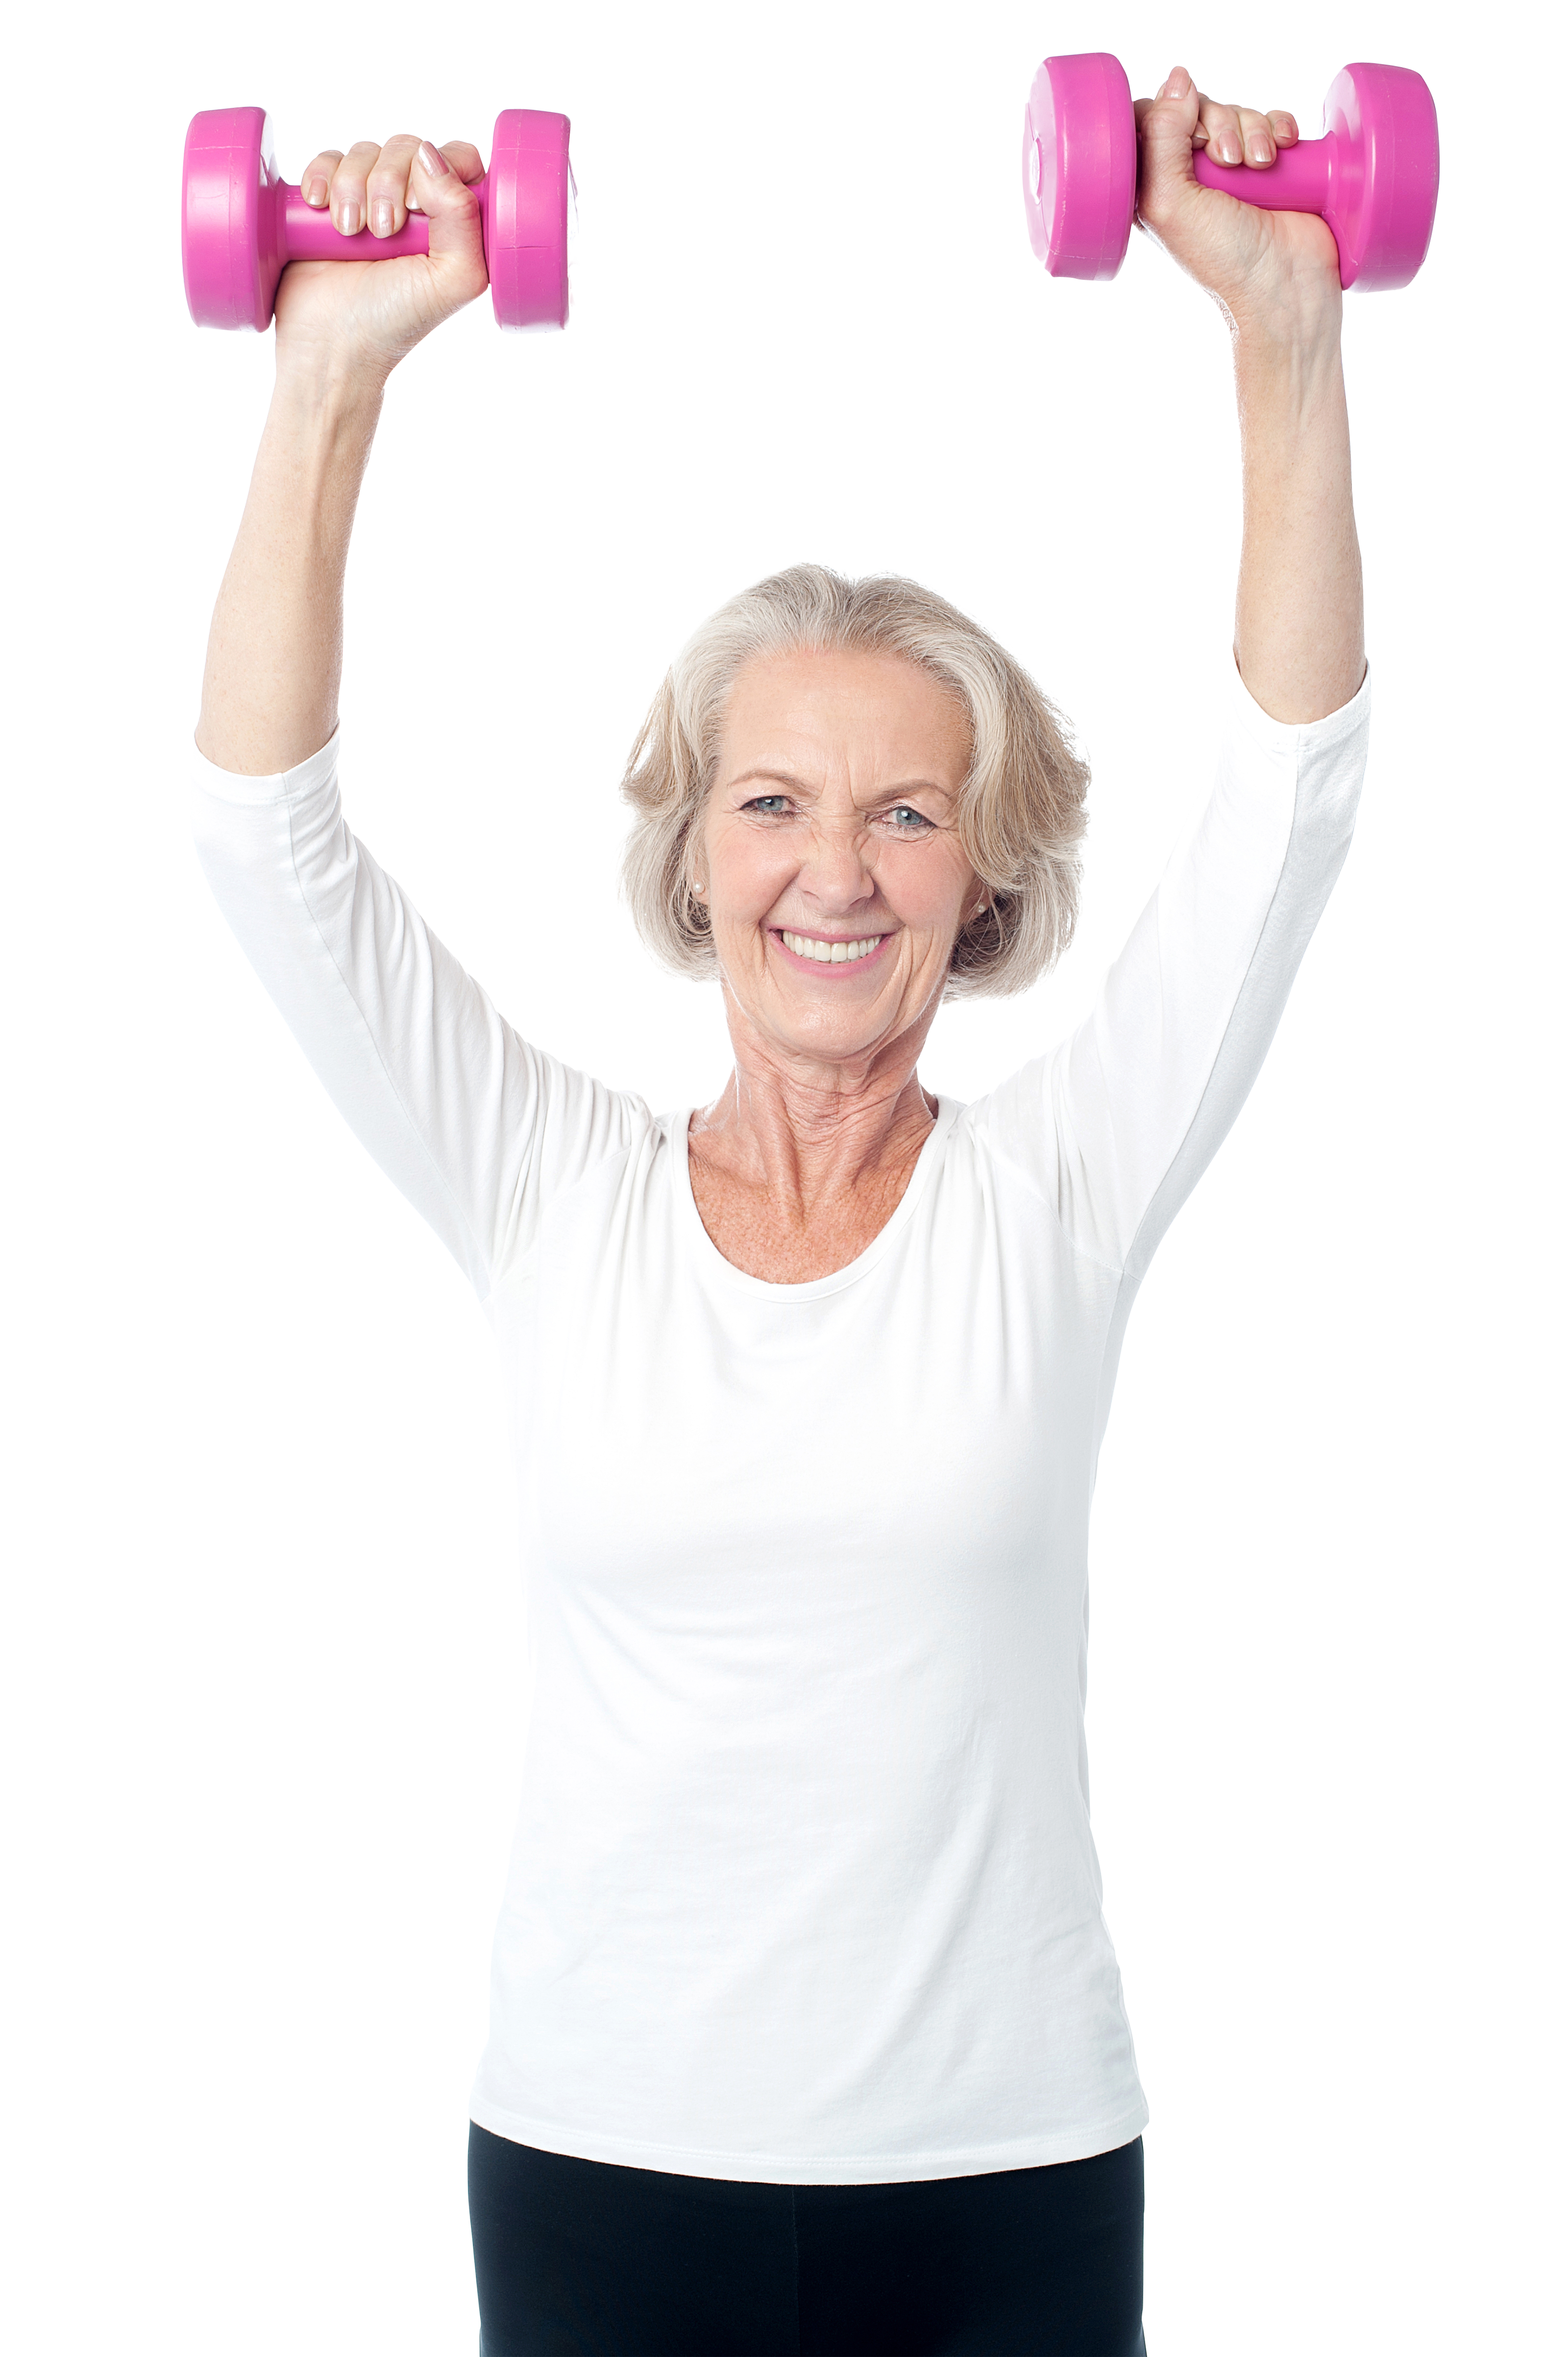 Old women png image. Clipart exercise woman exercise